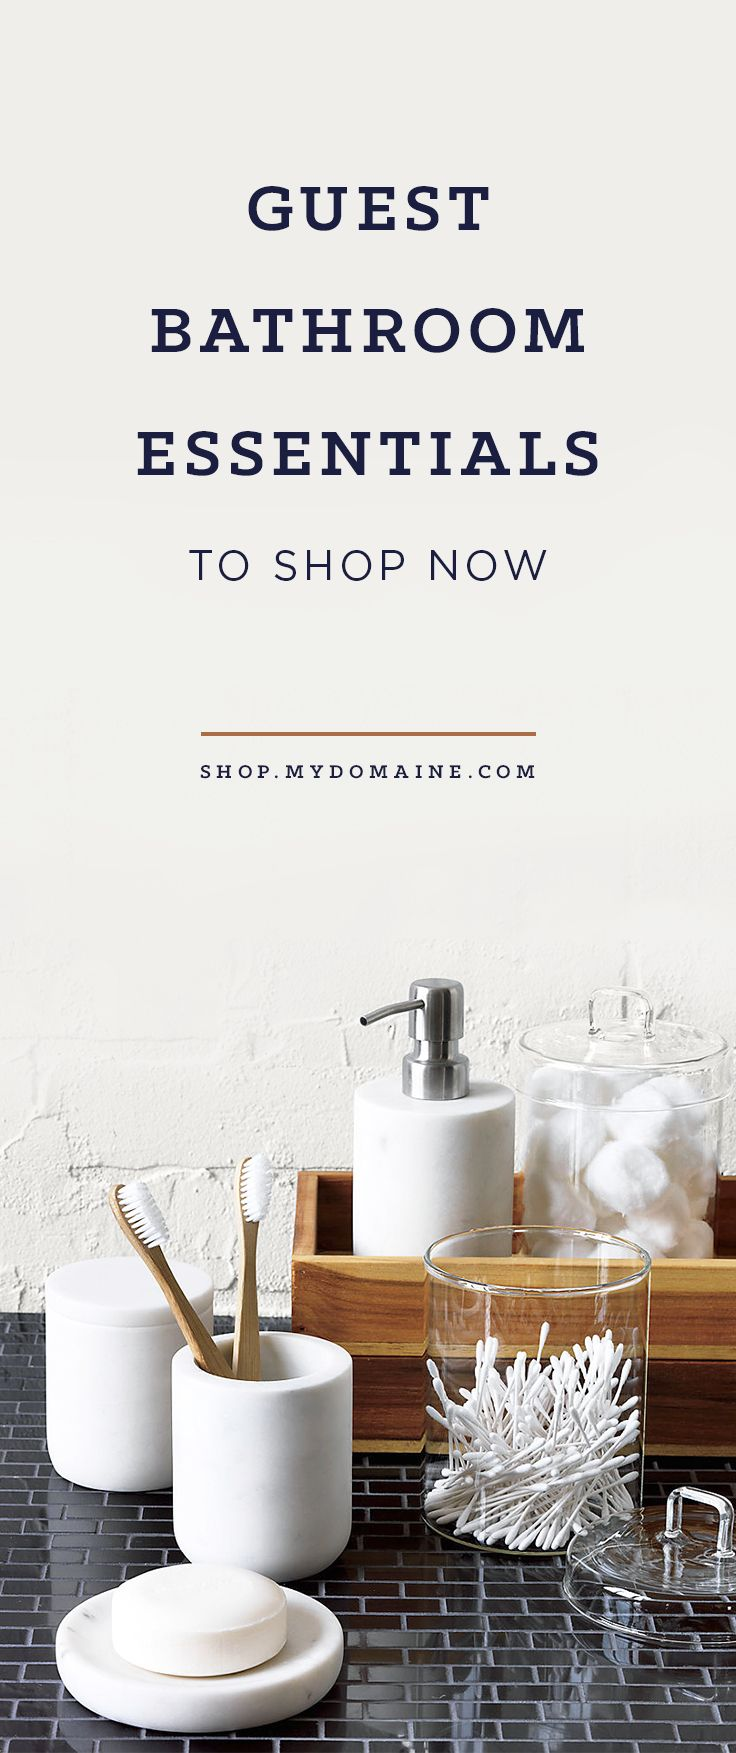 Guest Bathroom Essentials to Delight Your Nearest and Dearest